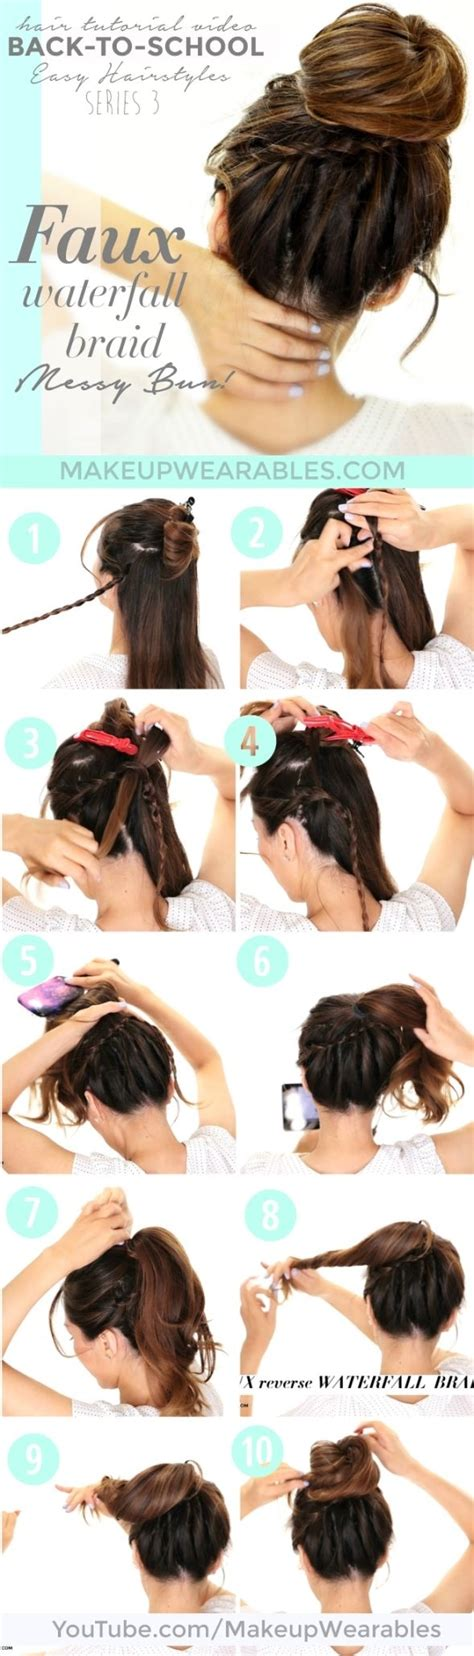 how to waterfall braid step by step how to fake waterfall braid on yourself step by step easy